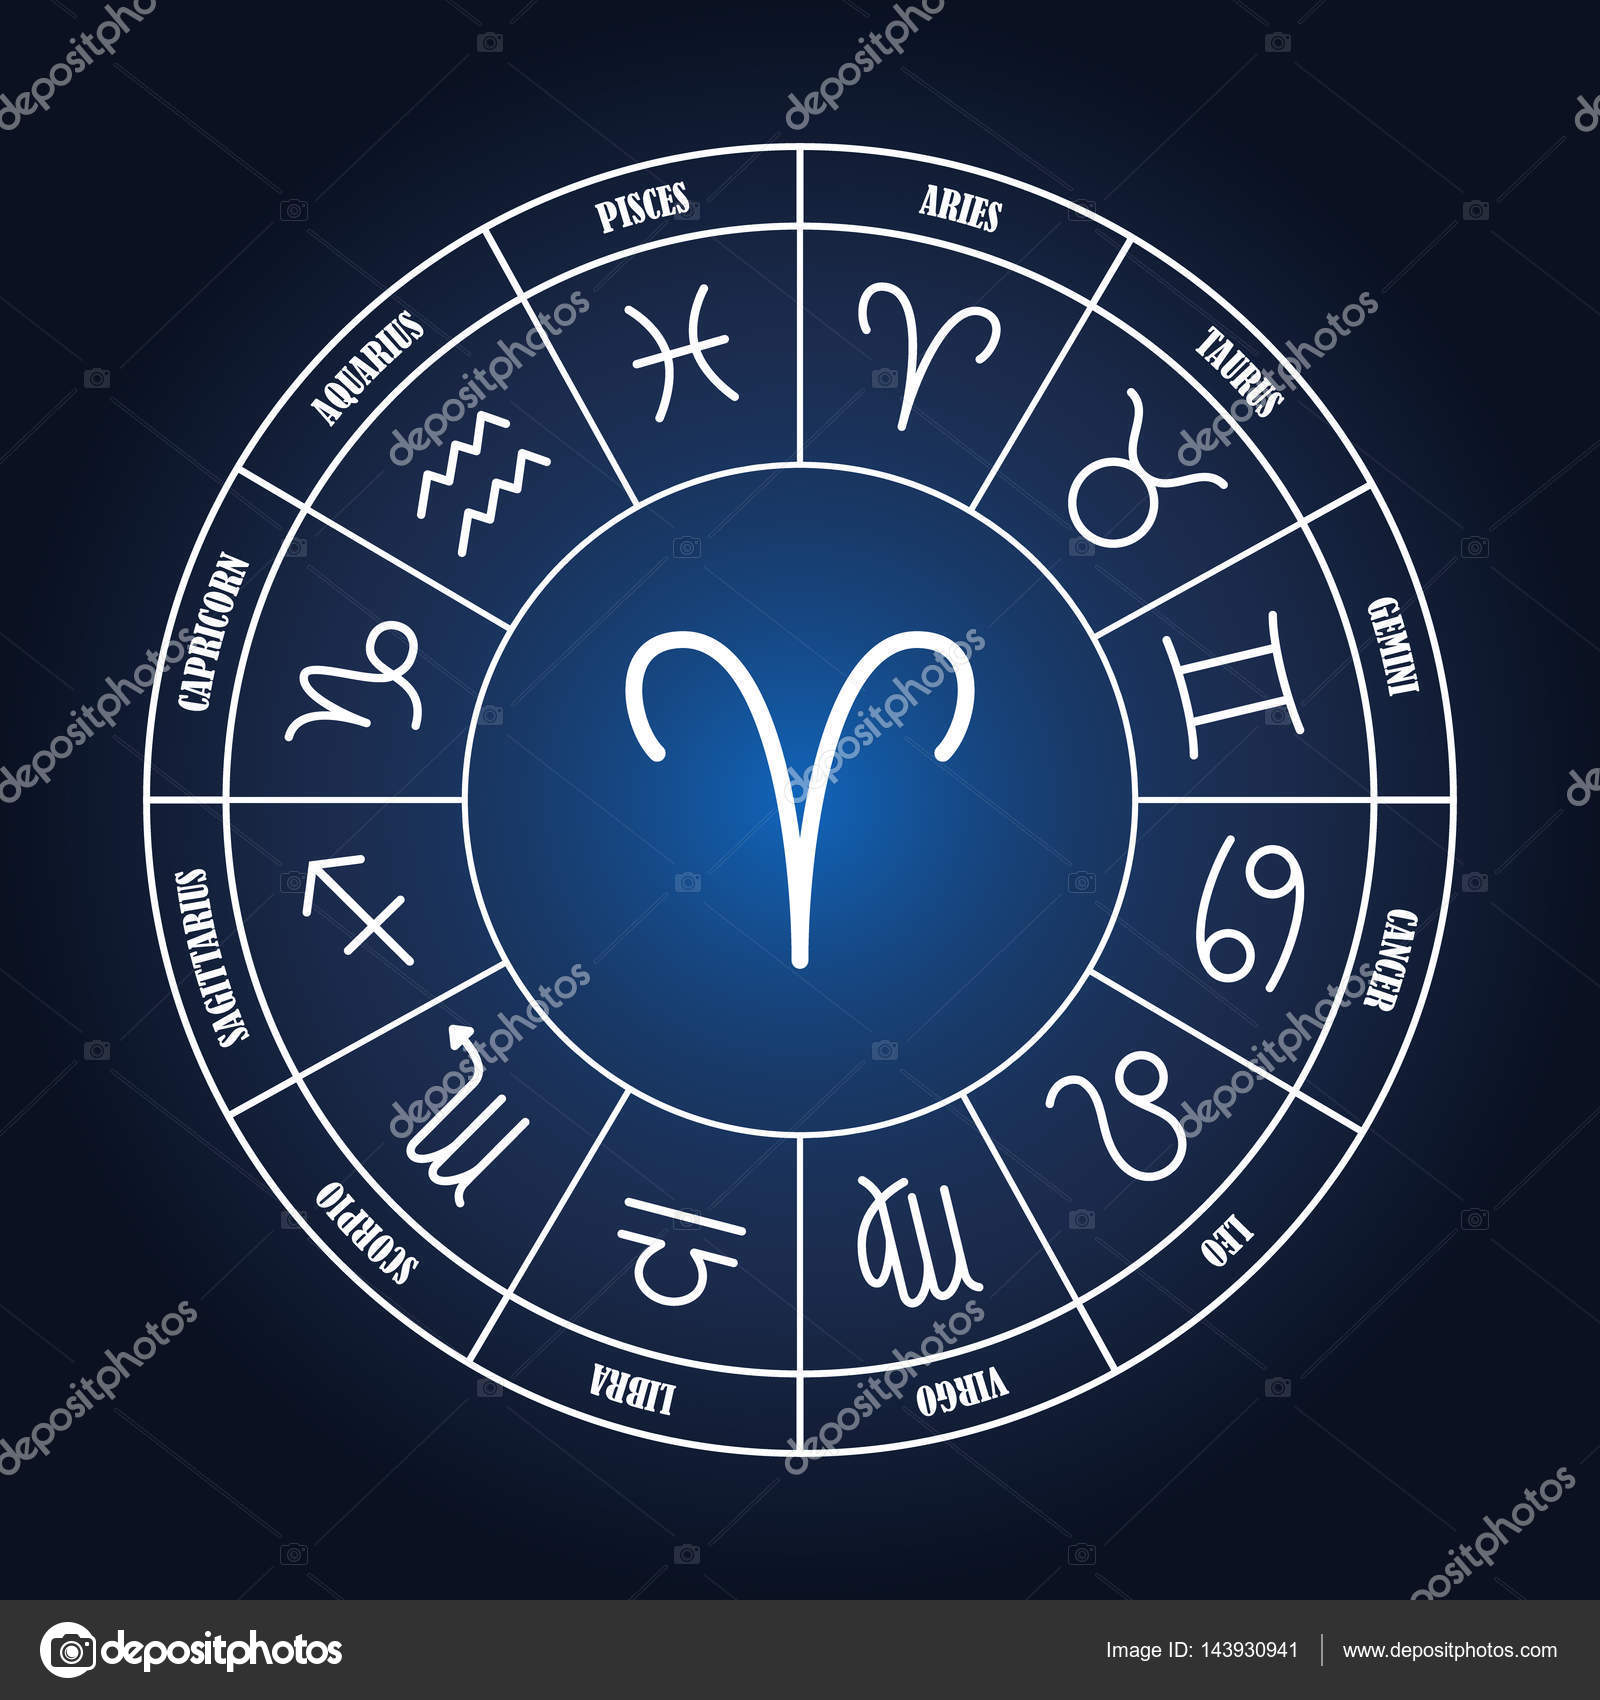 Aries astrology sing in zodiac circle stock vector soloviika aries astrology sing in zodiac circle on the dark blue background set of astrology sings vector by soloviika ccuart Images